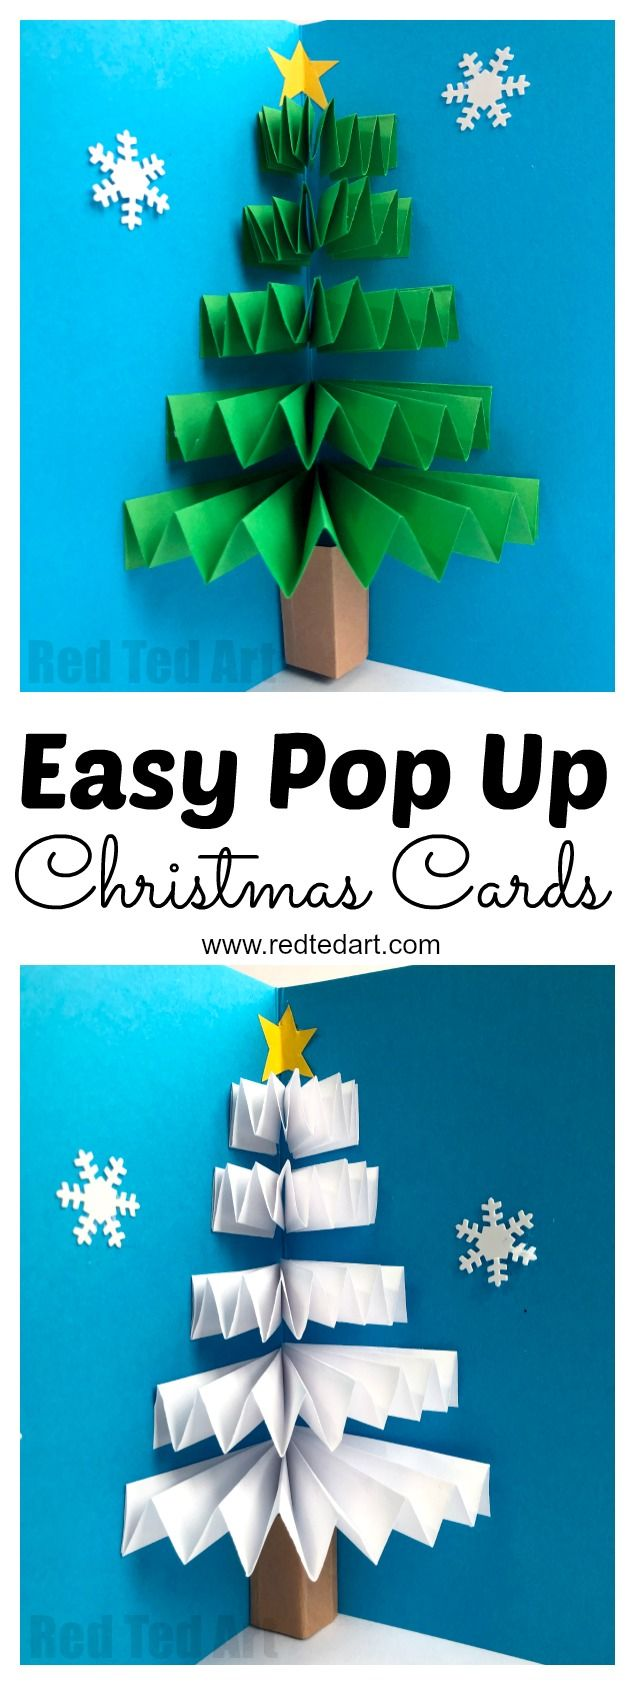 DIY-3D-Christmas-Card-Pop-Up.jpg 635×1 685 pikseli